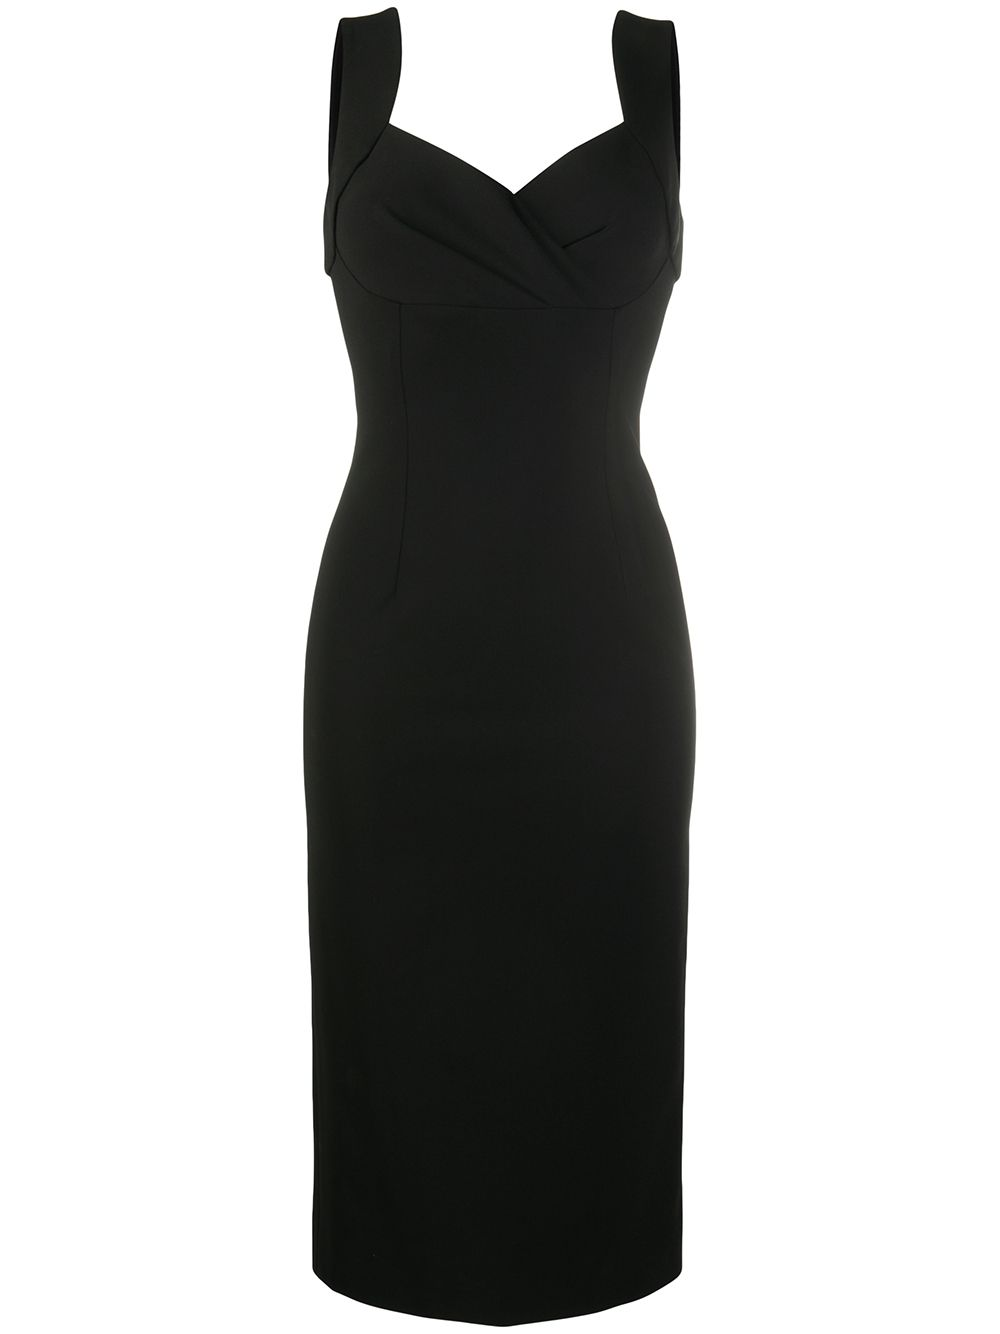 Dolce & Gabbana sleeveless midi dress - Black von Dolce & Gabbana